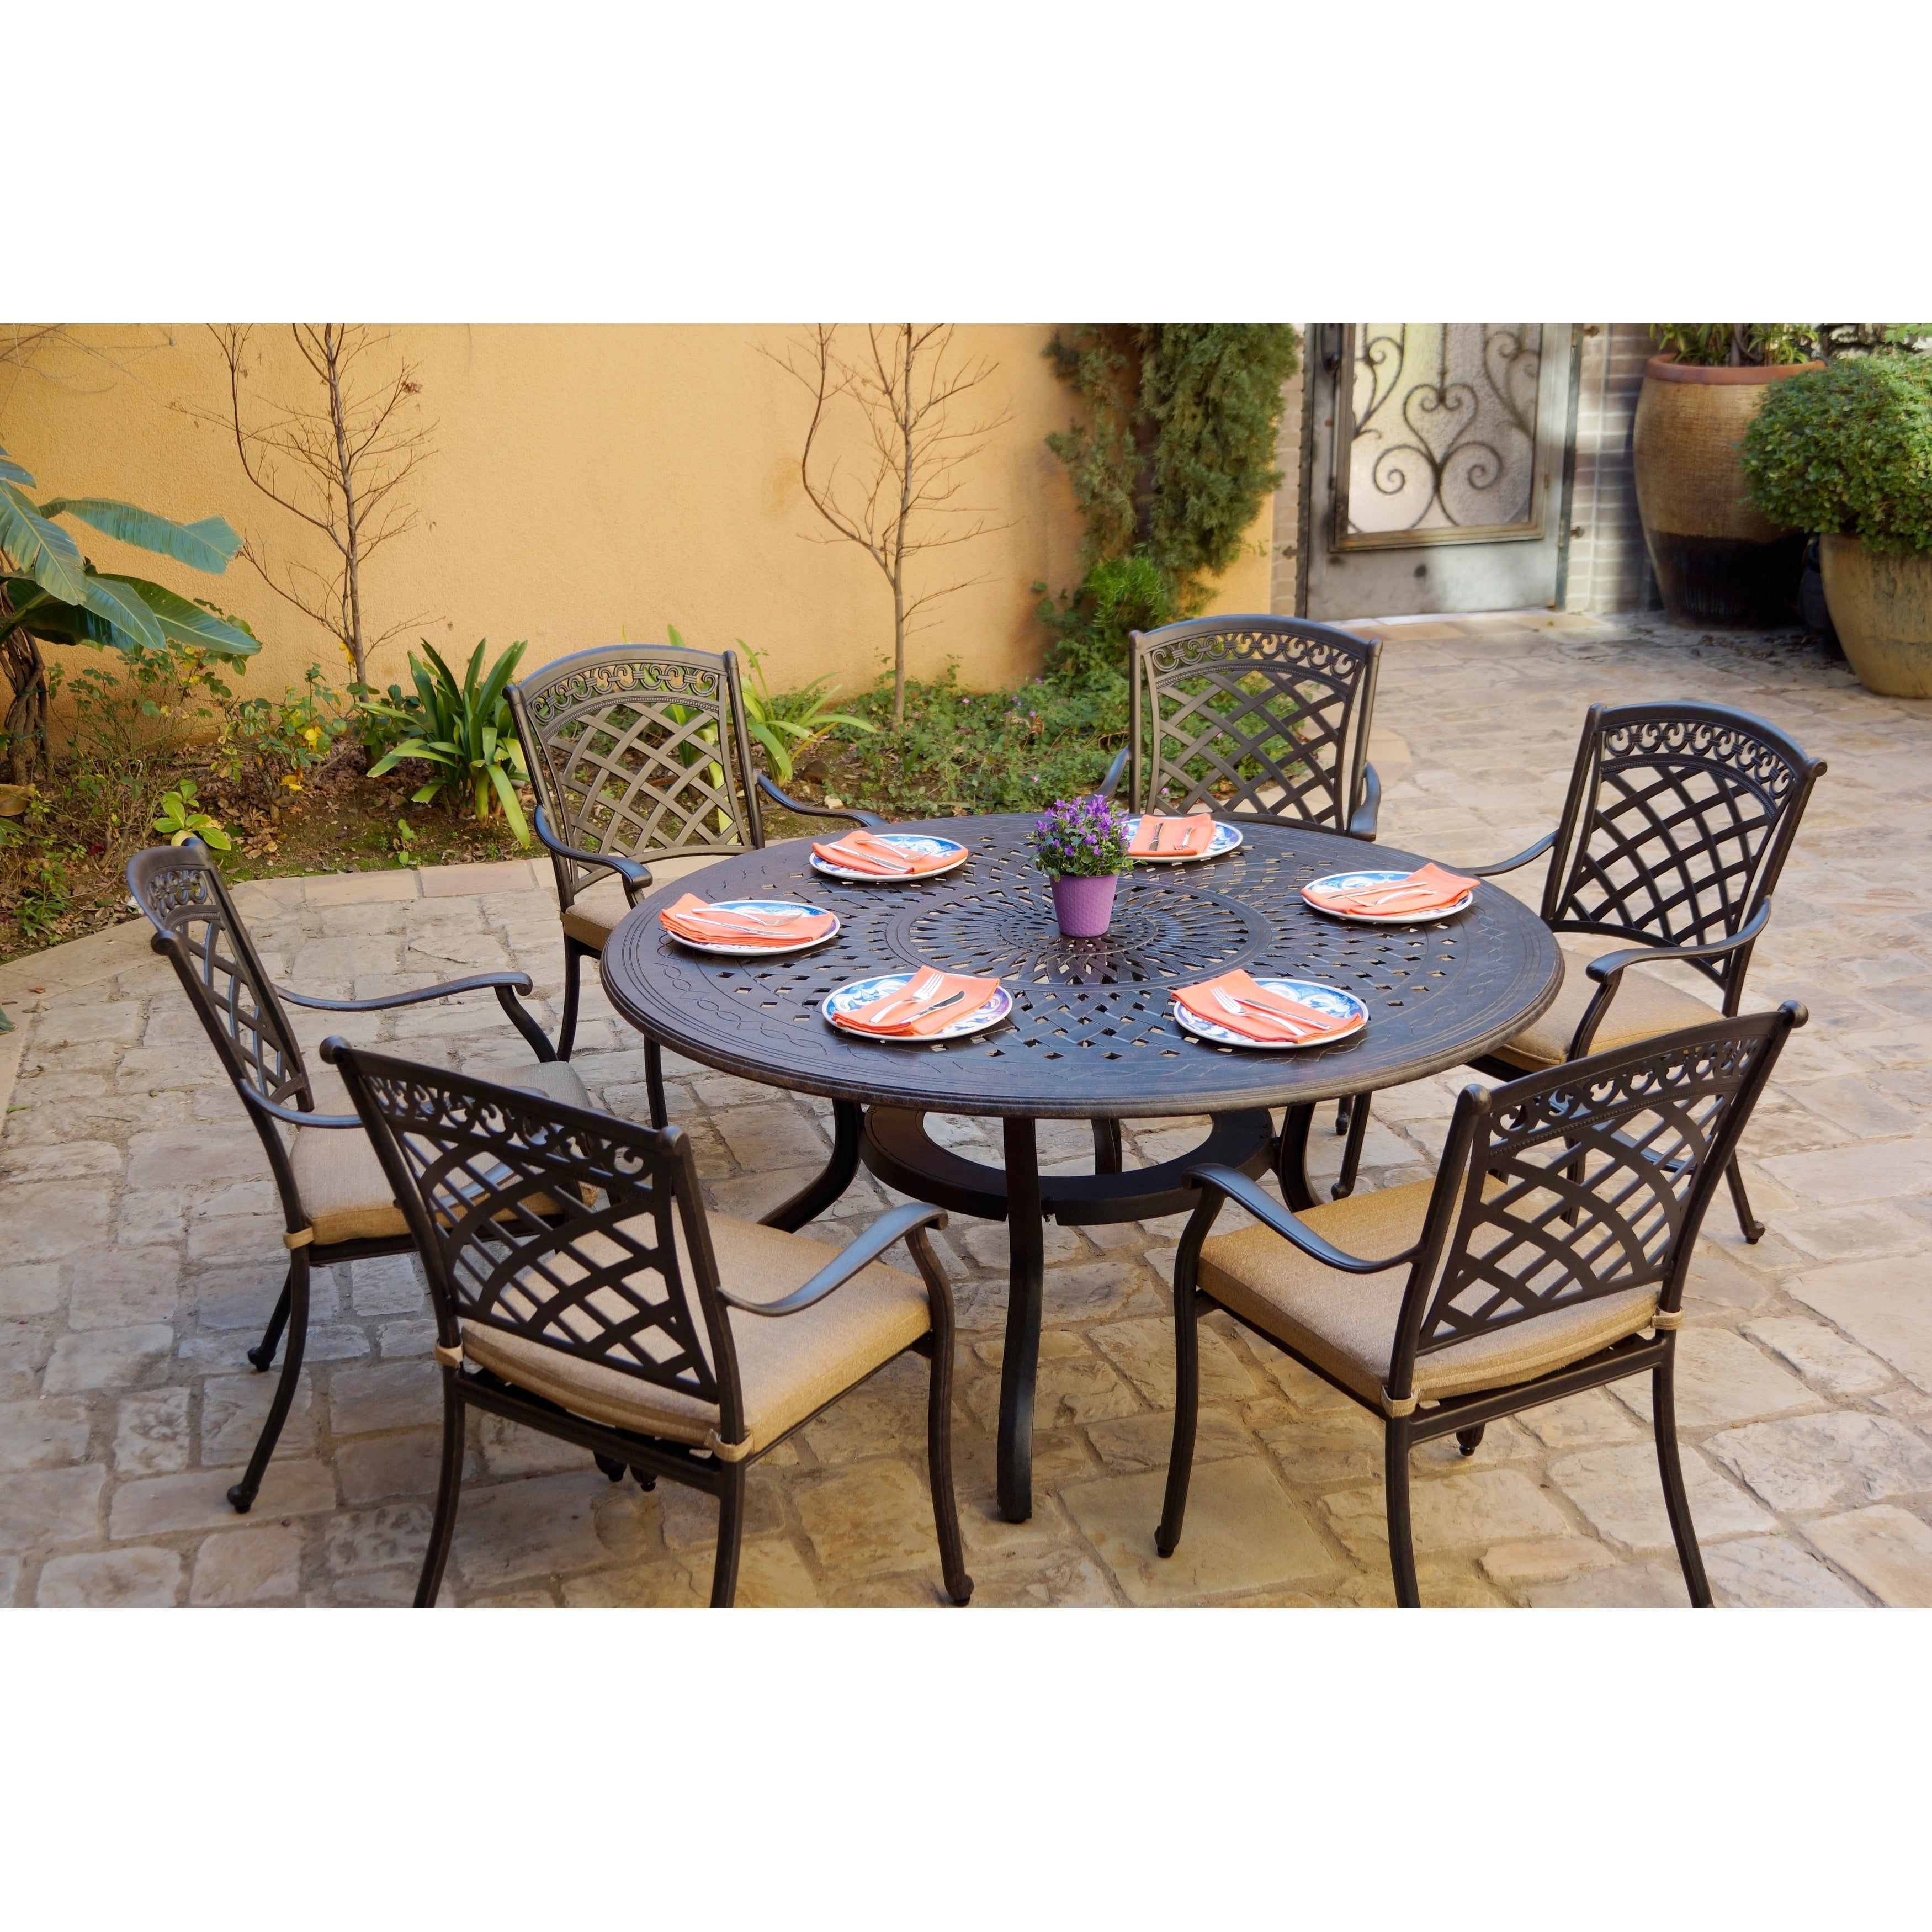 7 Piece Patio Dining Set 60 Inch Round Dining Table Overstock 27326446